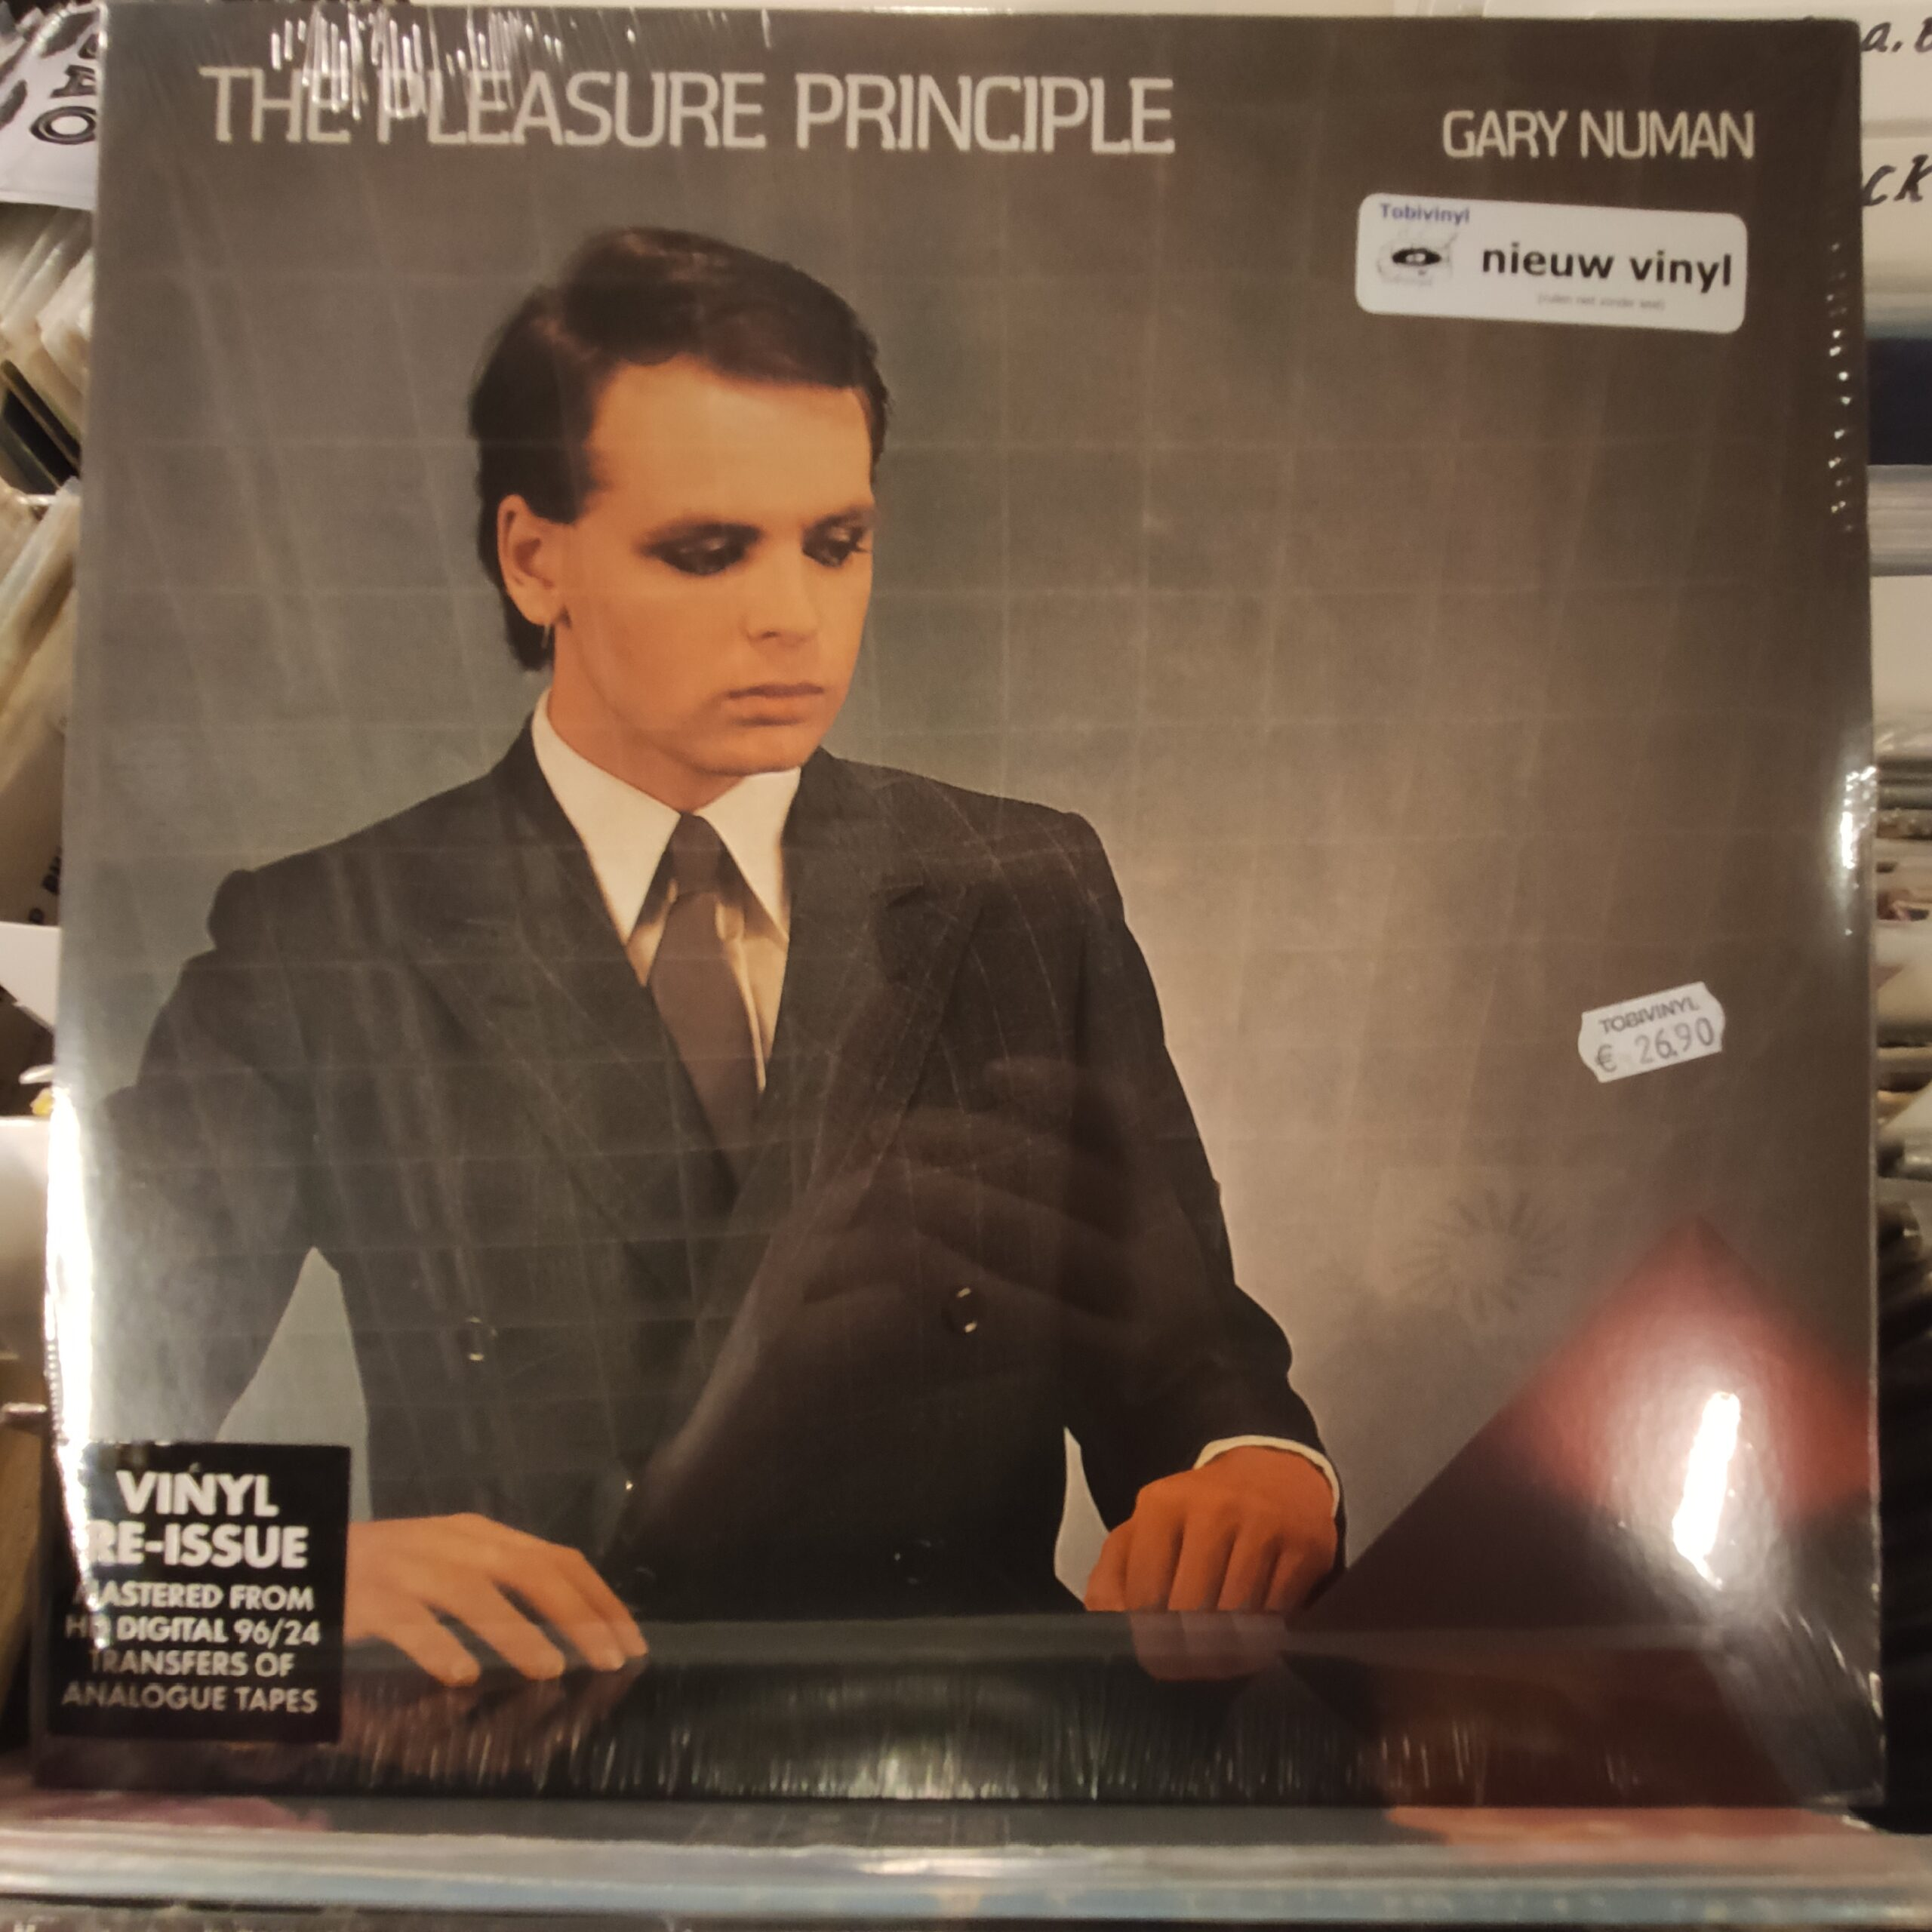 Product image Gary Newman – the pleasure principle – nieuw vinyl